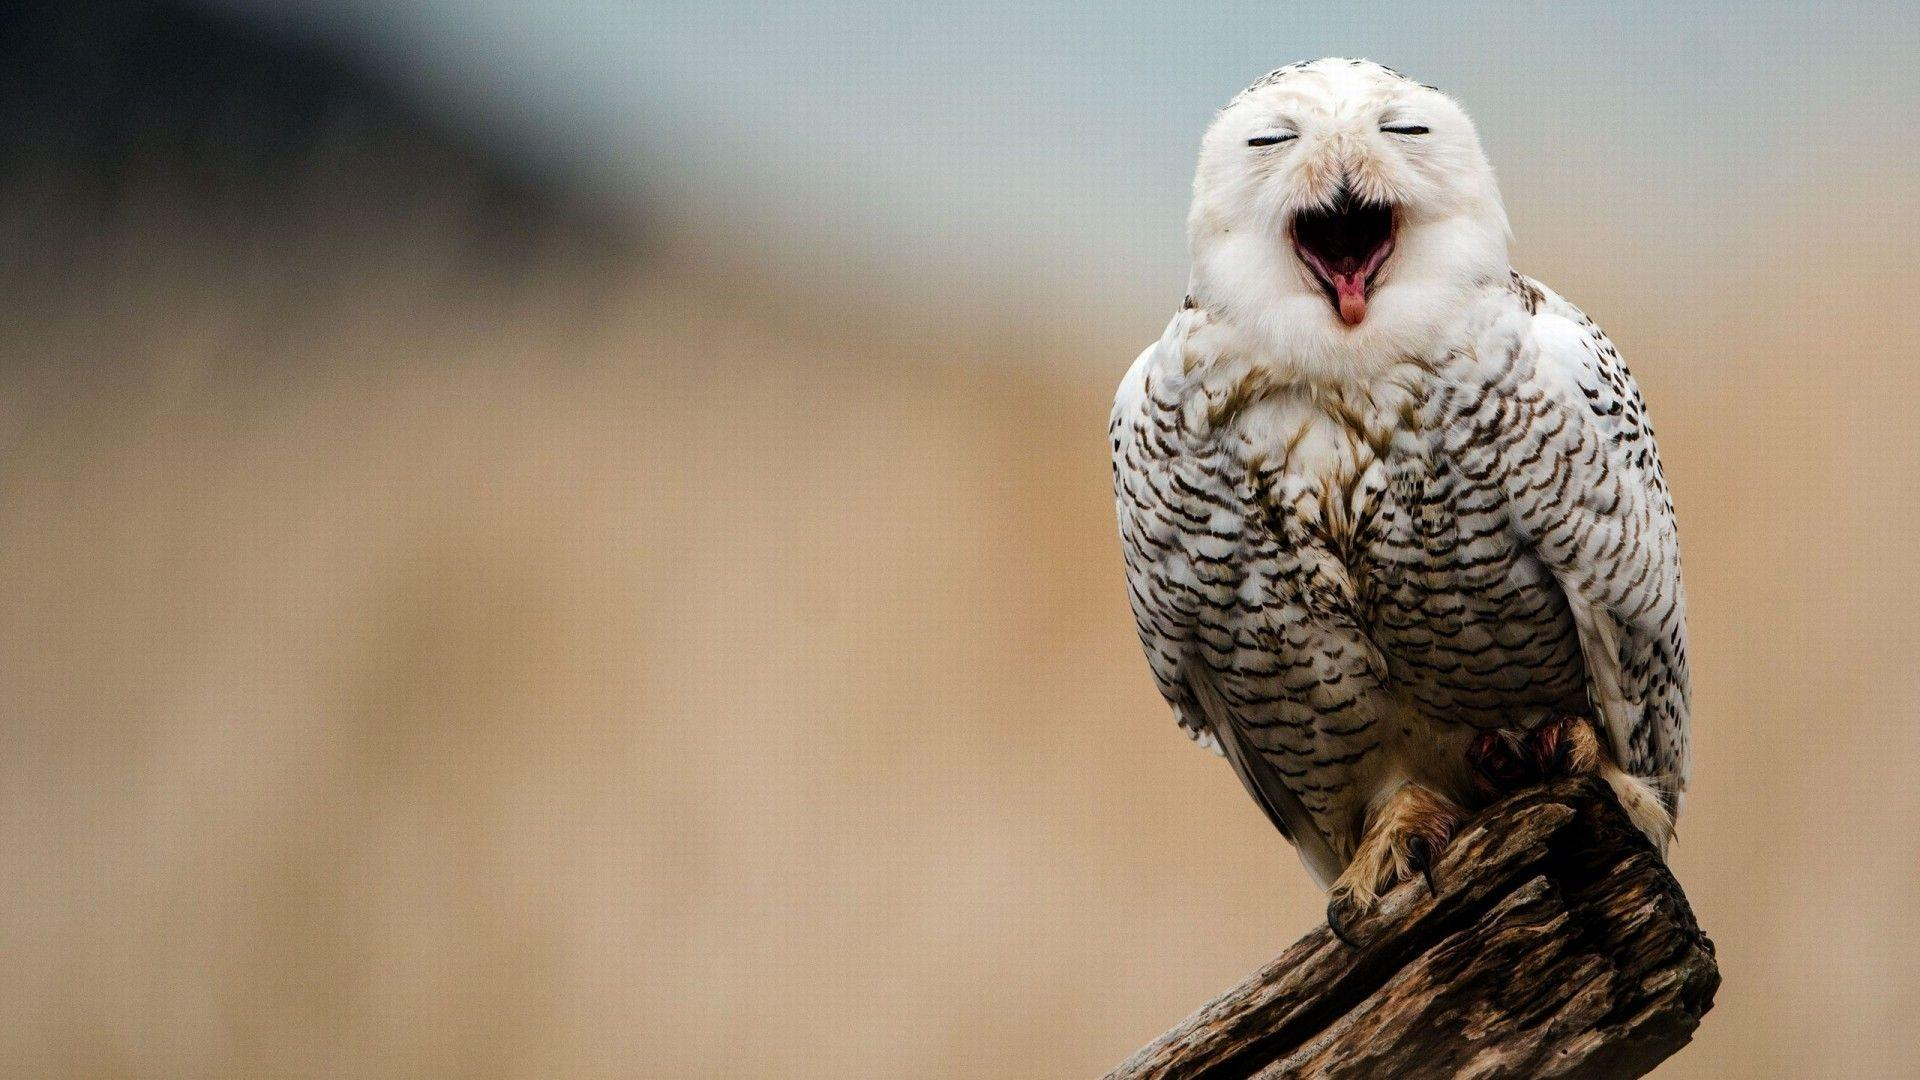 HD Snowy Owl Wallpaper | Cool Owls